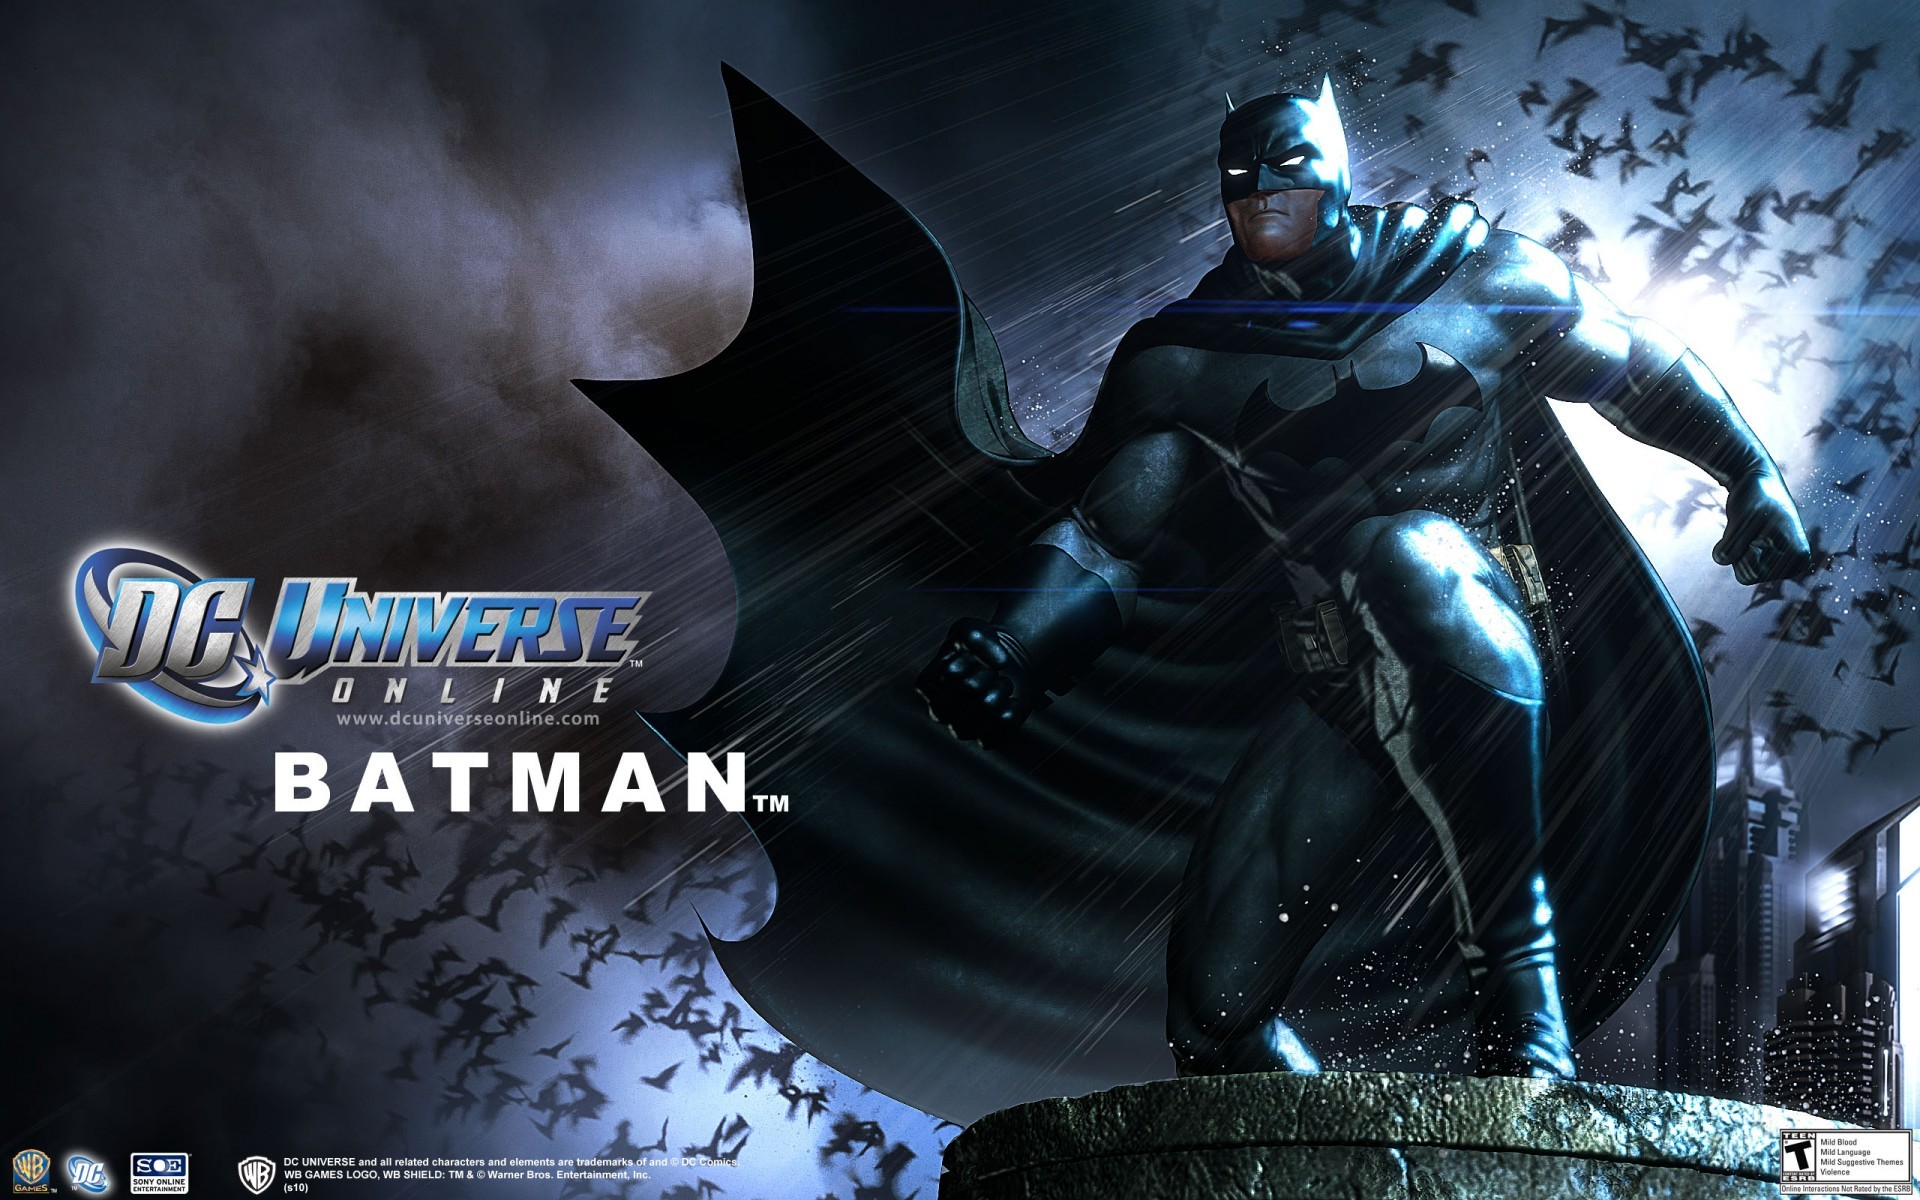 Batman Master Bat HD wallpaper 1920x1200 Batman Master Bat 1024x600 1920x1200